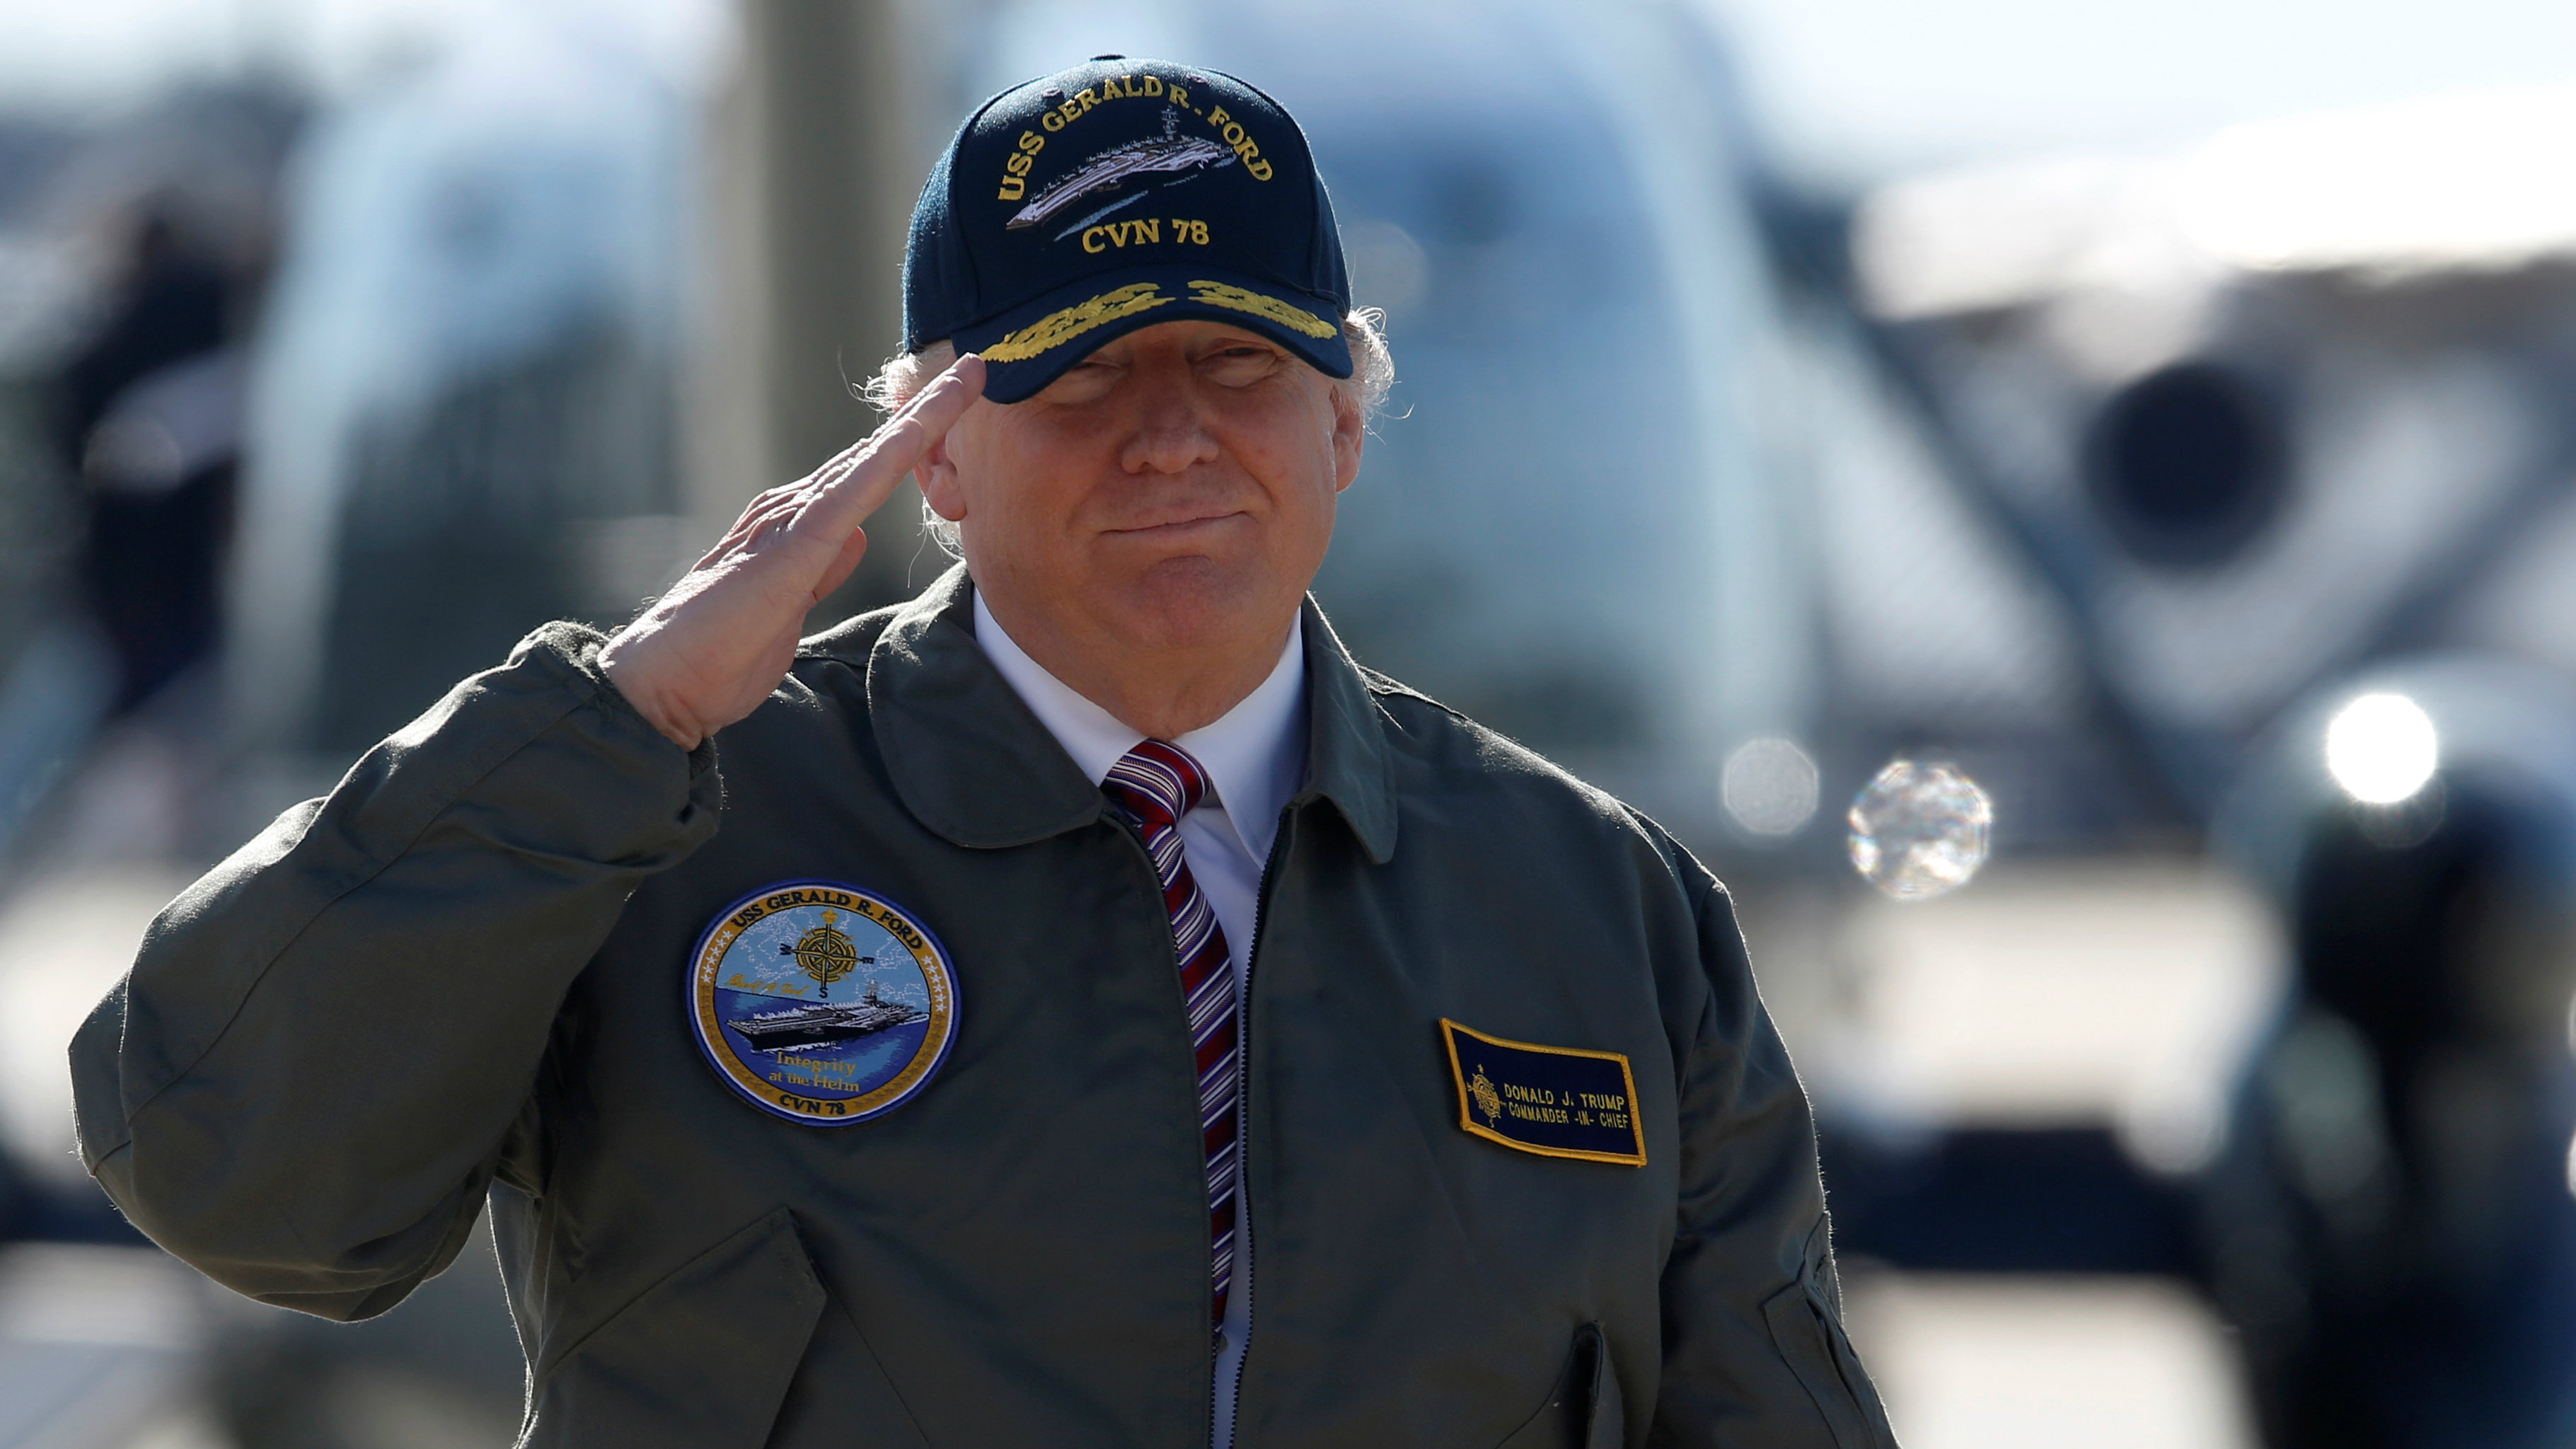 US President Donald Trump arrives to board Air Force One to depart Langley Air Force Base